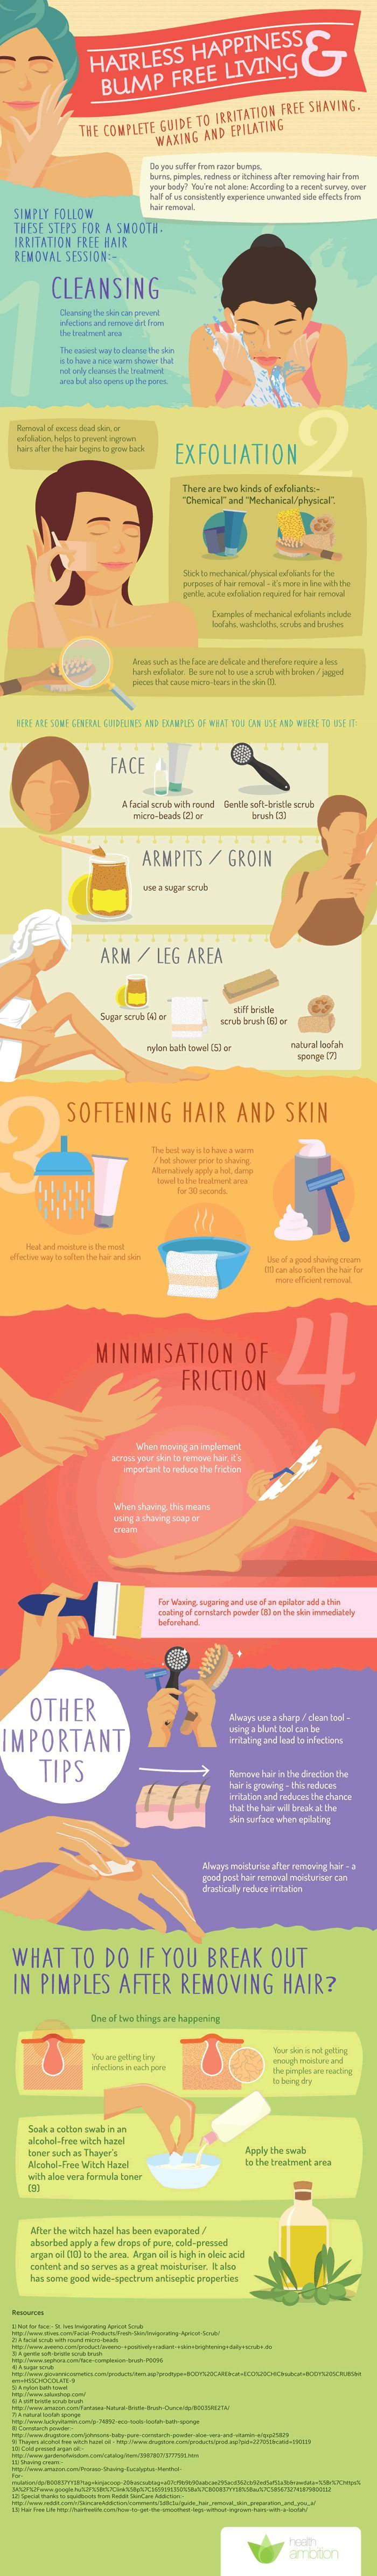 How to Get Rid of Razor Bumps  The Ultimate Guide